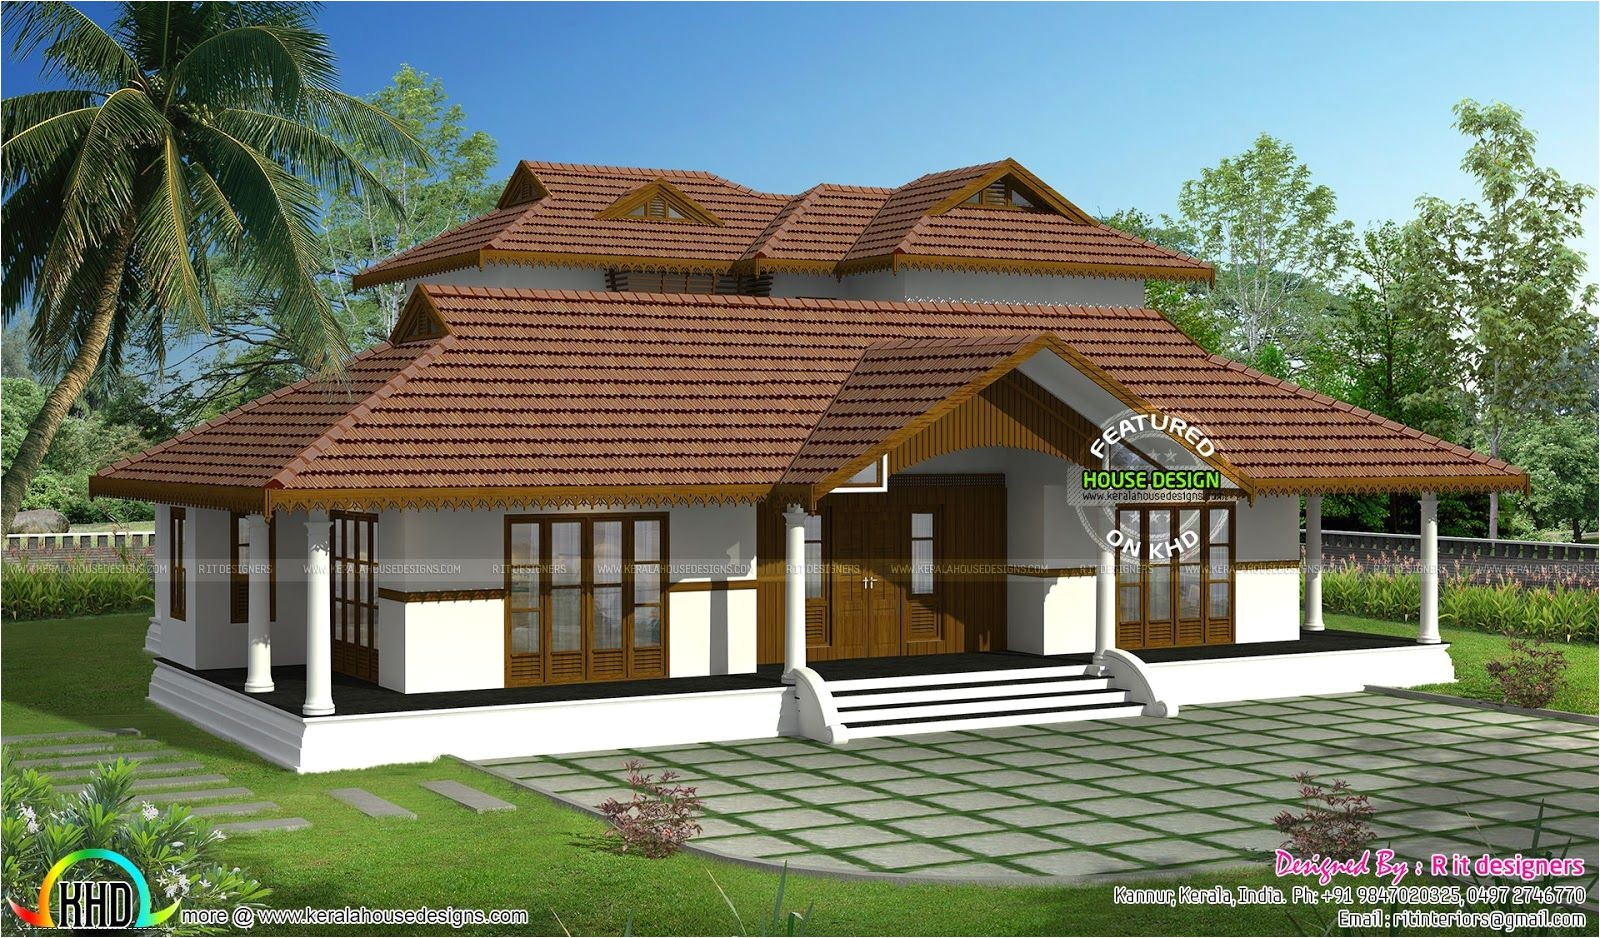 Traditional Home House Plans Kerala Traditional Home with ... on future house plans, dream home house plans, minimalist house plans, bathroom house plans, contemporary home designs house plans, villas house plans, lighting house plans, vastu house plans, floor plan house plans, architects house plans, beautiful home house plans, utility house plans, interior house plans, kerala house plans, mansion house plans, amazing house plans, exterior house plans, unusual house plans, front door house plans, creative house plans,